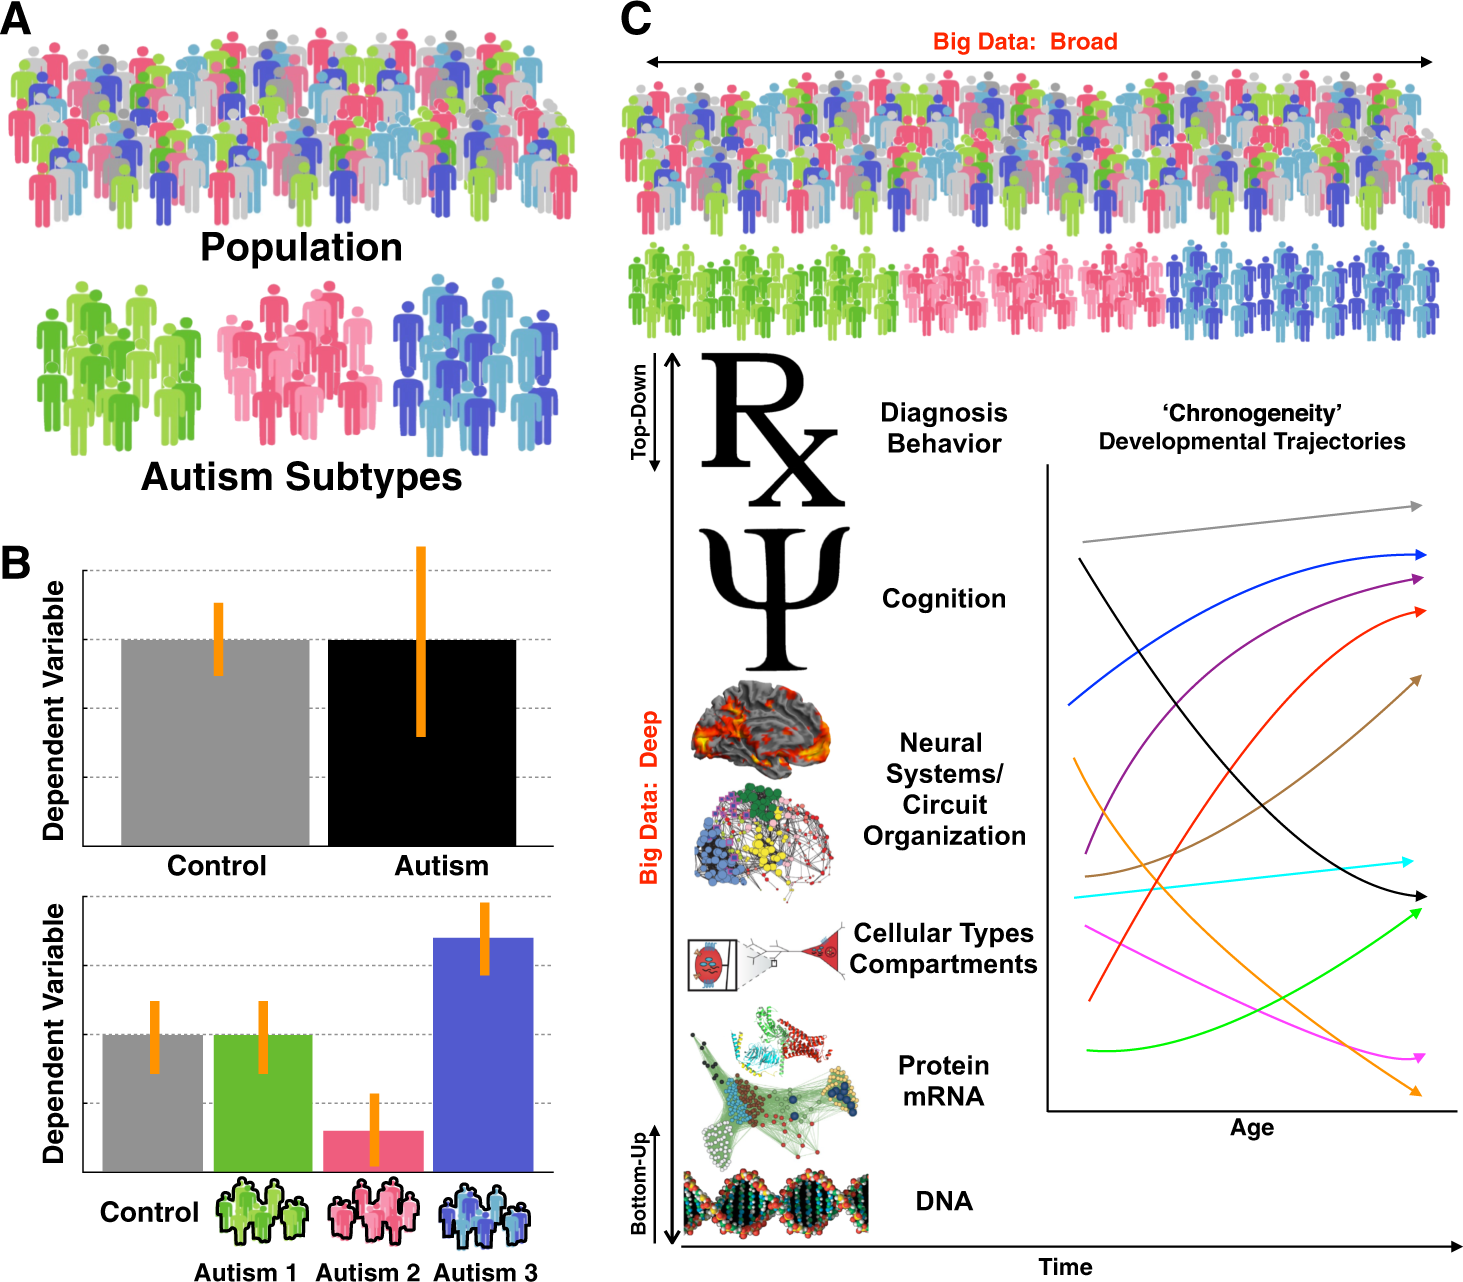 Autism From Behavior To Biology >> Big Data Approaches To Decomposing Heterogeneity Across The